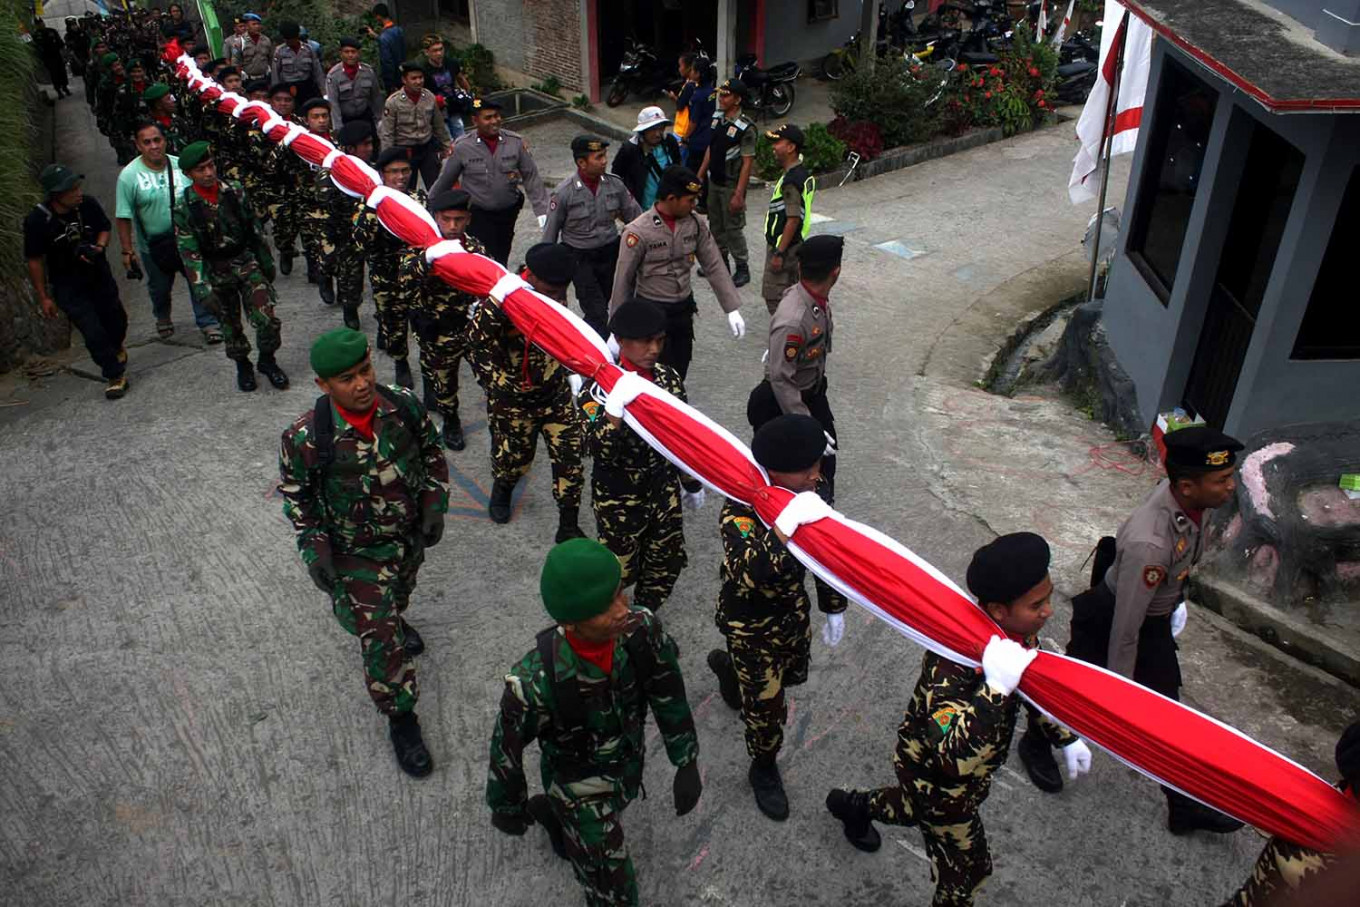 Members of the Indonesian Army (TNI), police and civilian security unit under the Nahdlatul Ulama's Ansor youth wing, Barisan Ansor Serbaguna (Banser), carry a 30-by-40-meter national flag at Sumilir Valley in Karanganyar, Central Java, on Aug. 1. JP/Maksum Nur Fauzan